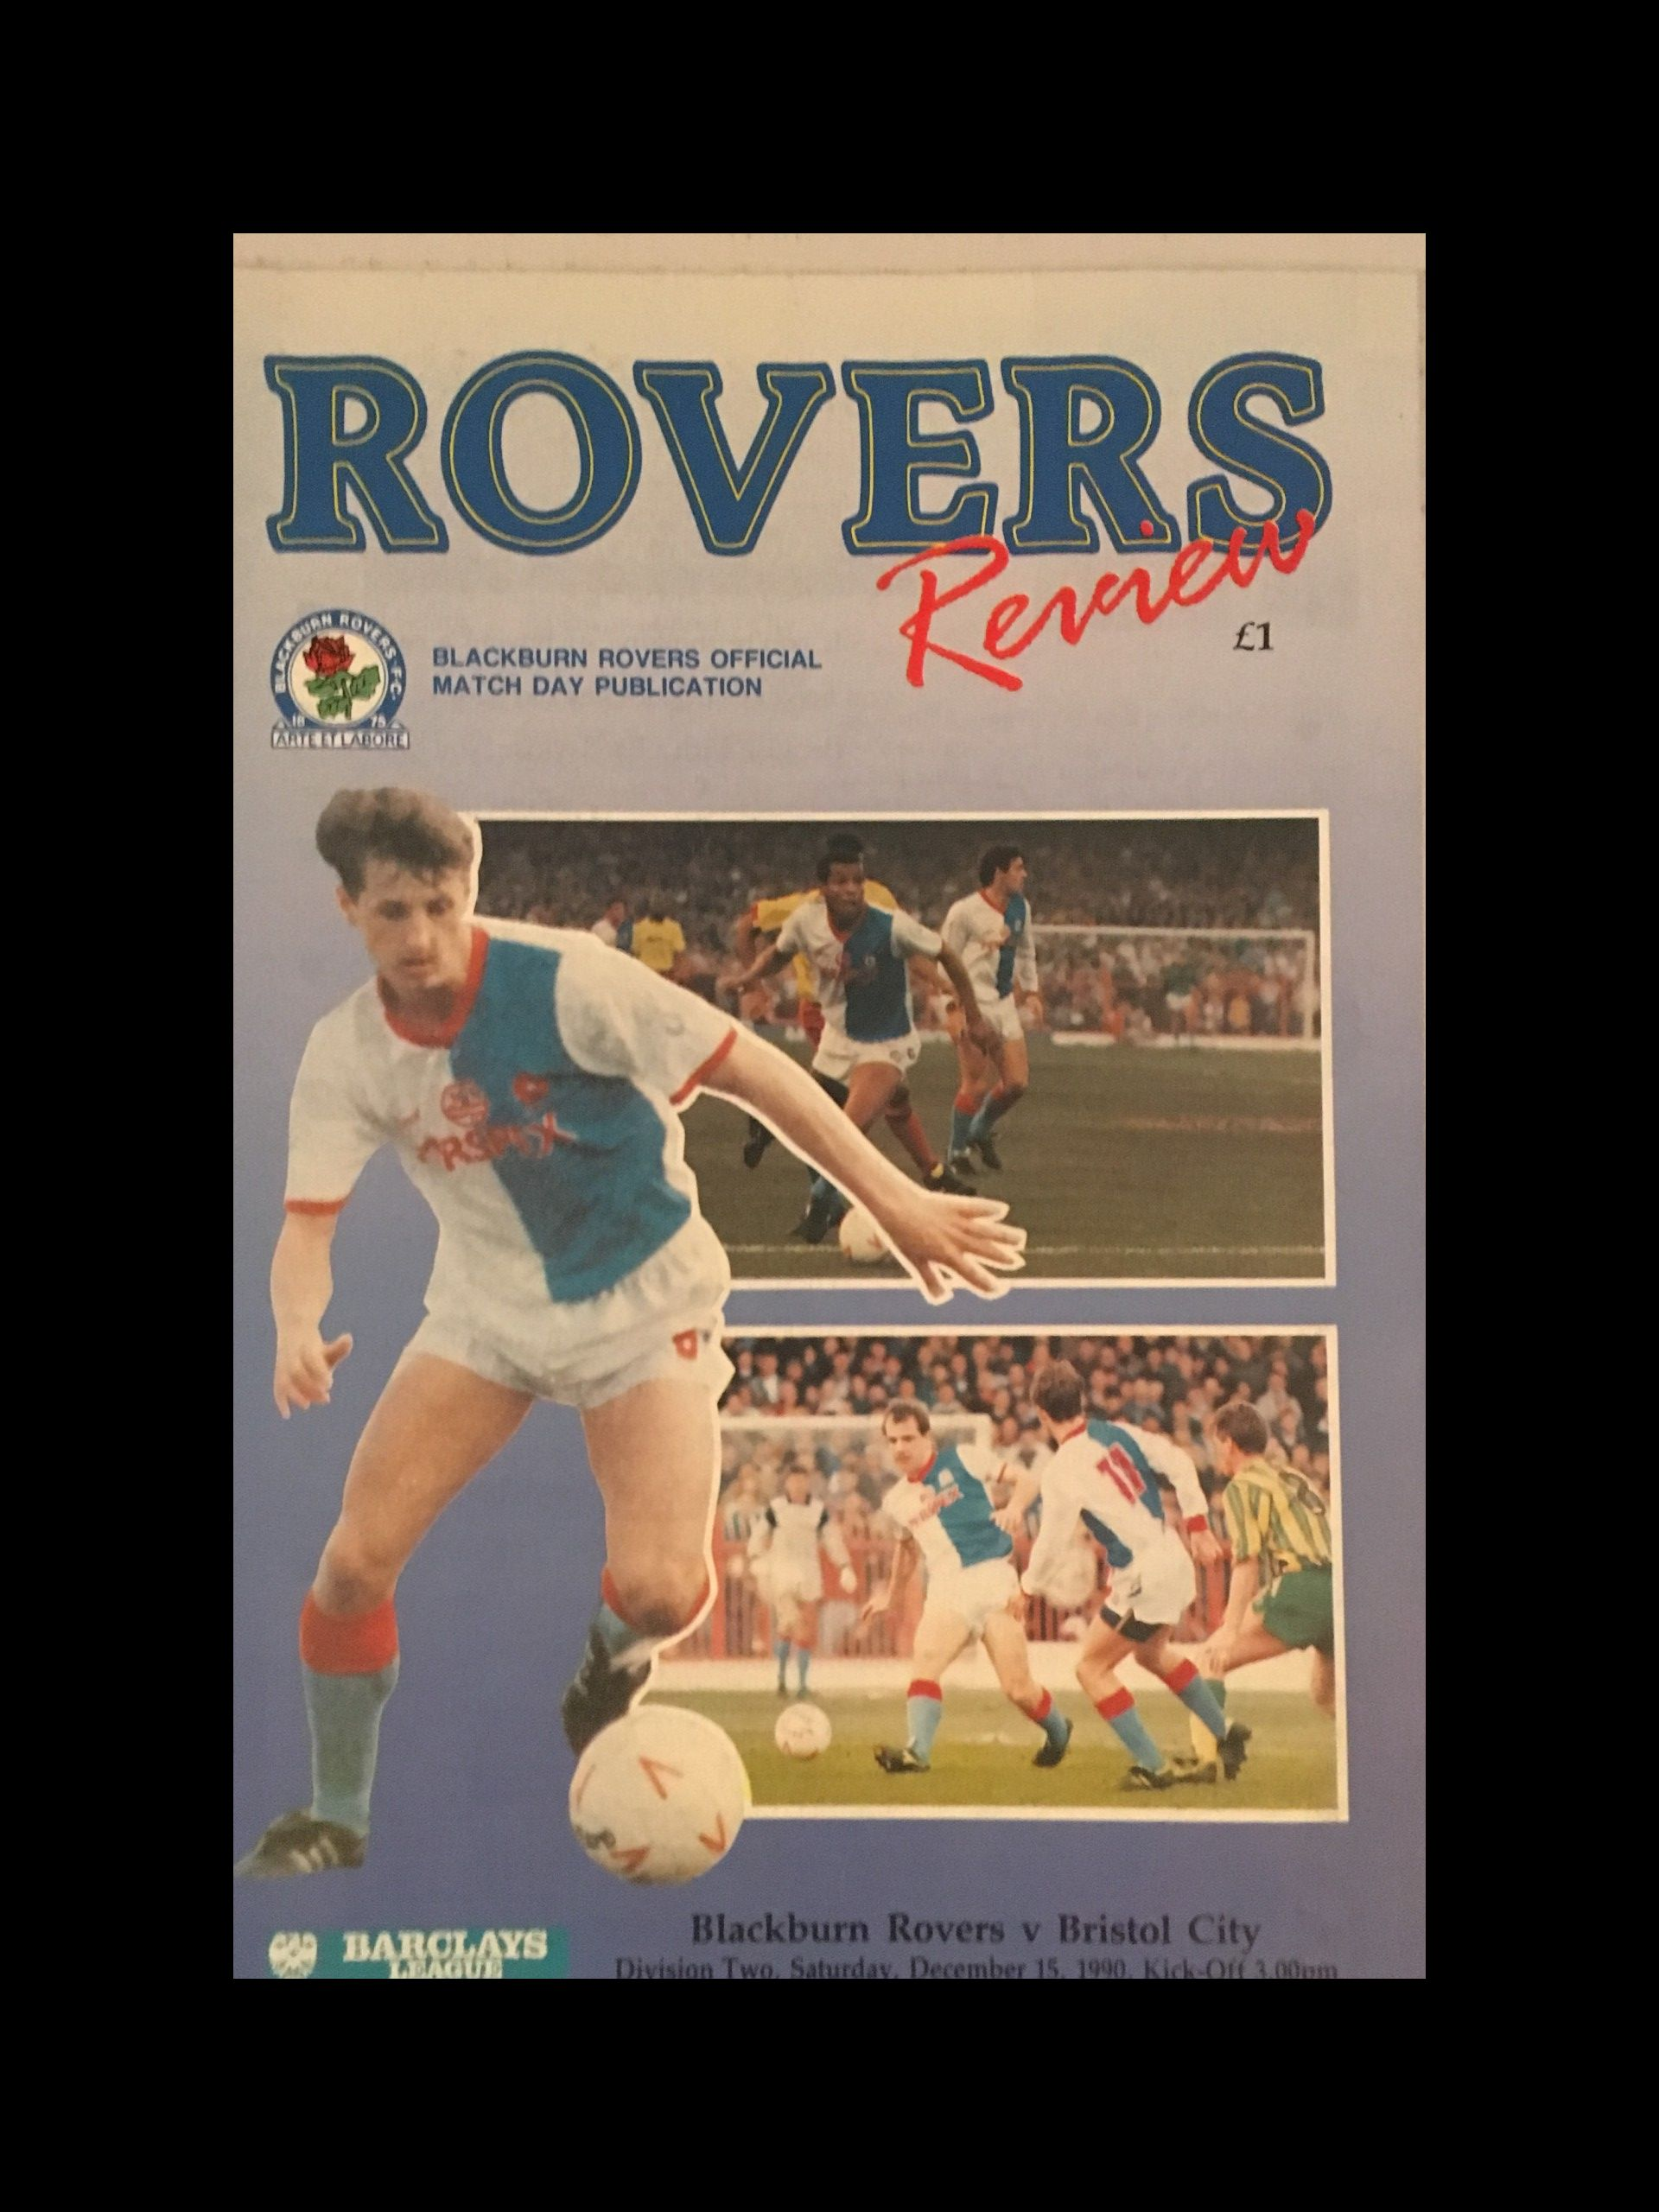 Blackburn Rovers v Bristol City 15-12-1990 Programme